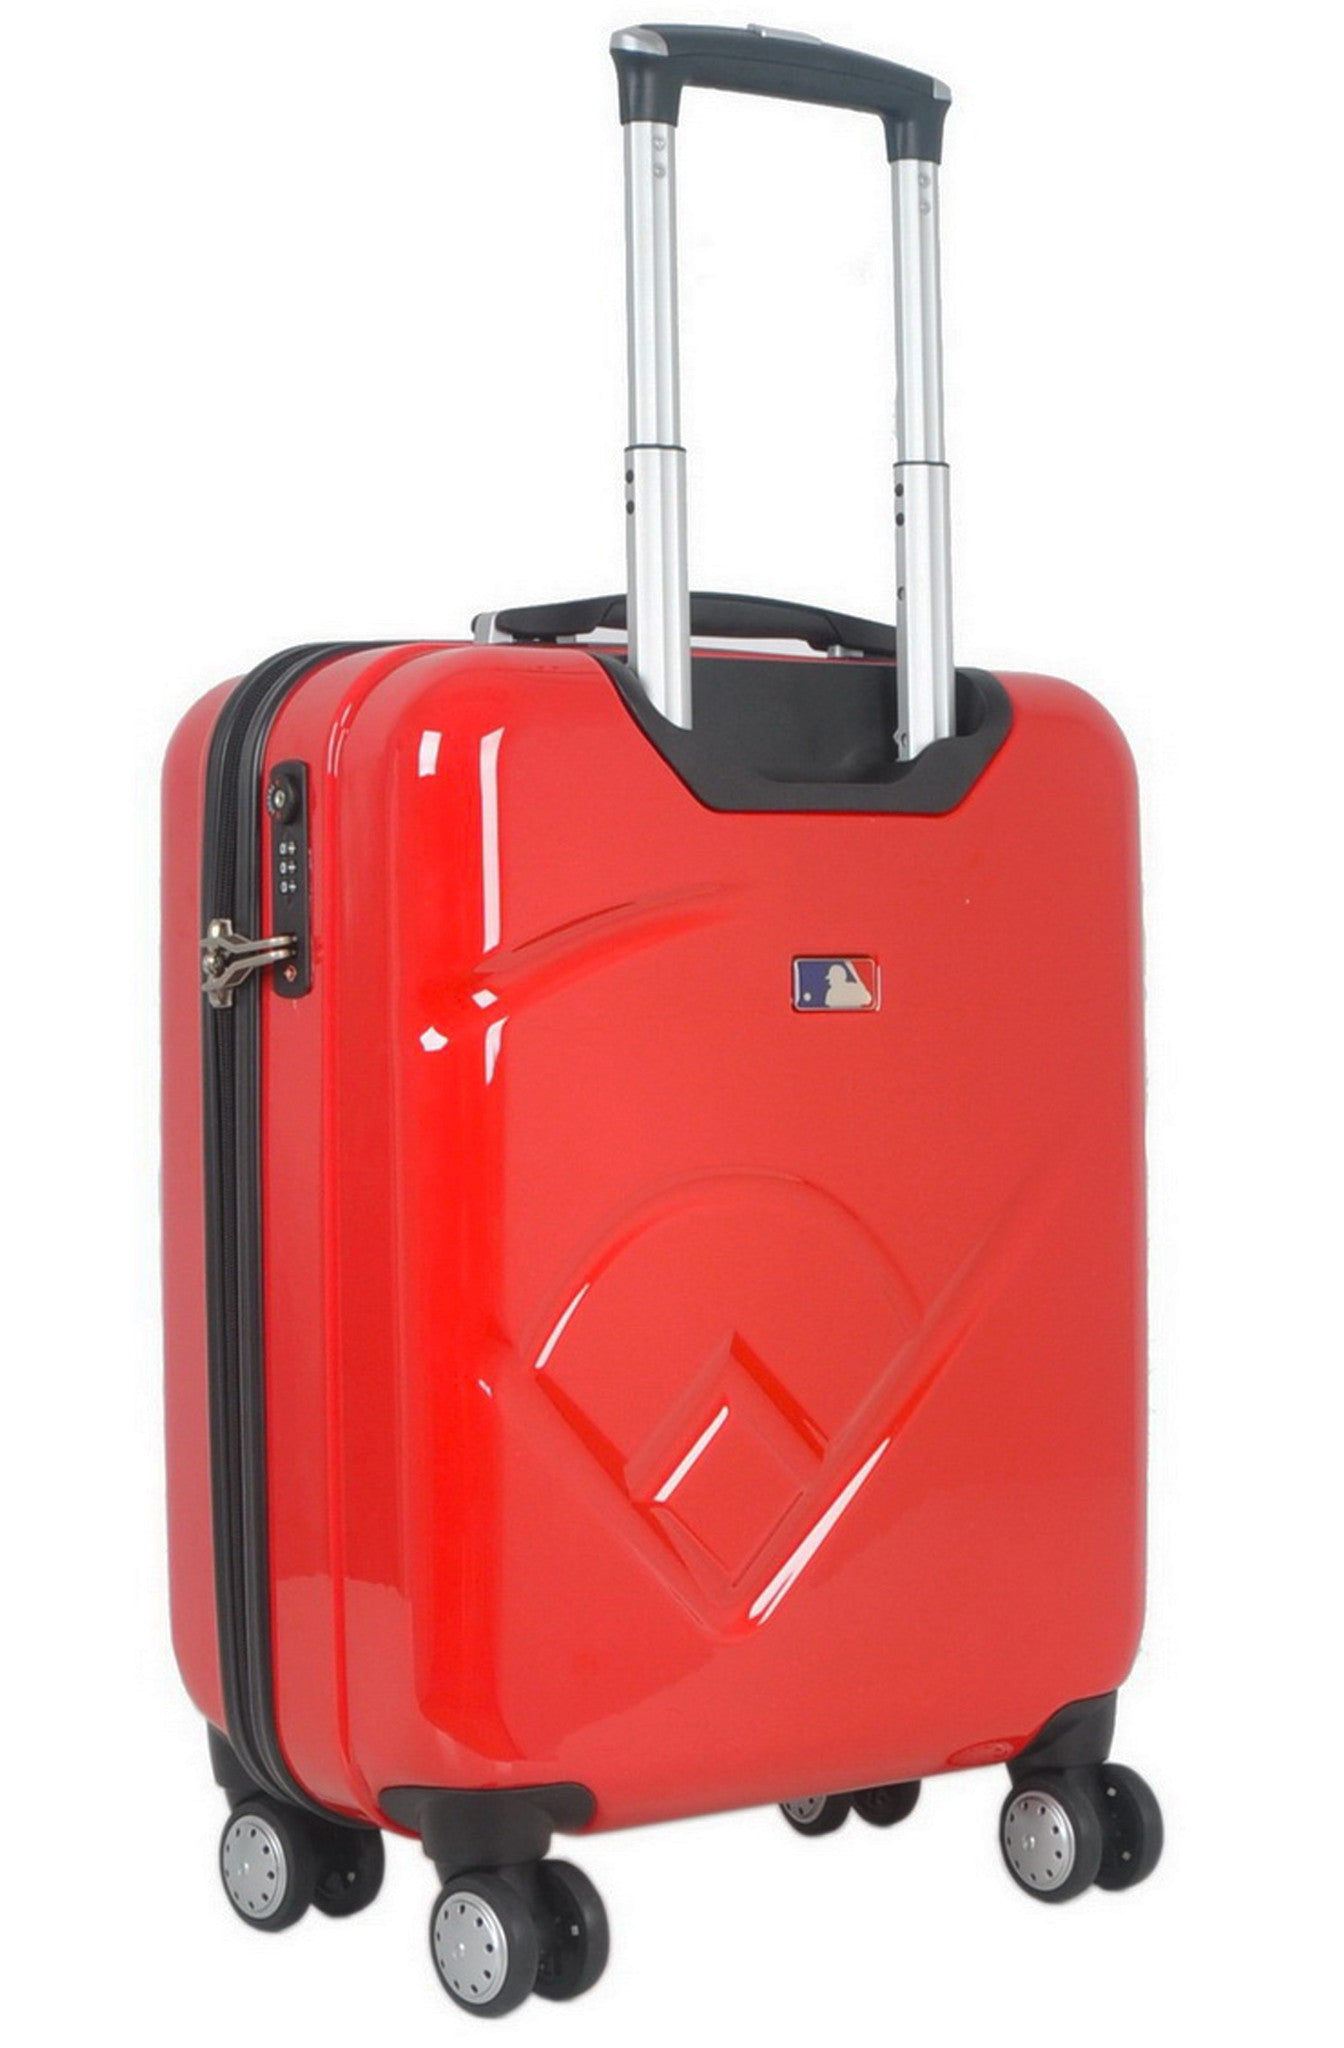 "Chicago Cubs, 19"" Premium Molded Luggage by Kaybull #CUB-19PCF-IFD - OBM Distribution, Inc."